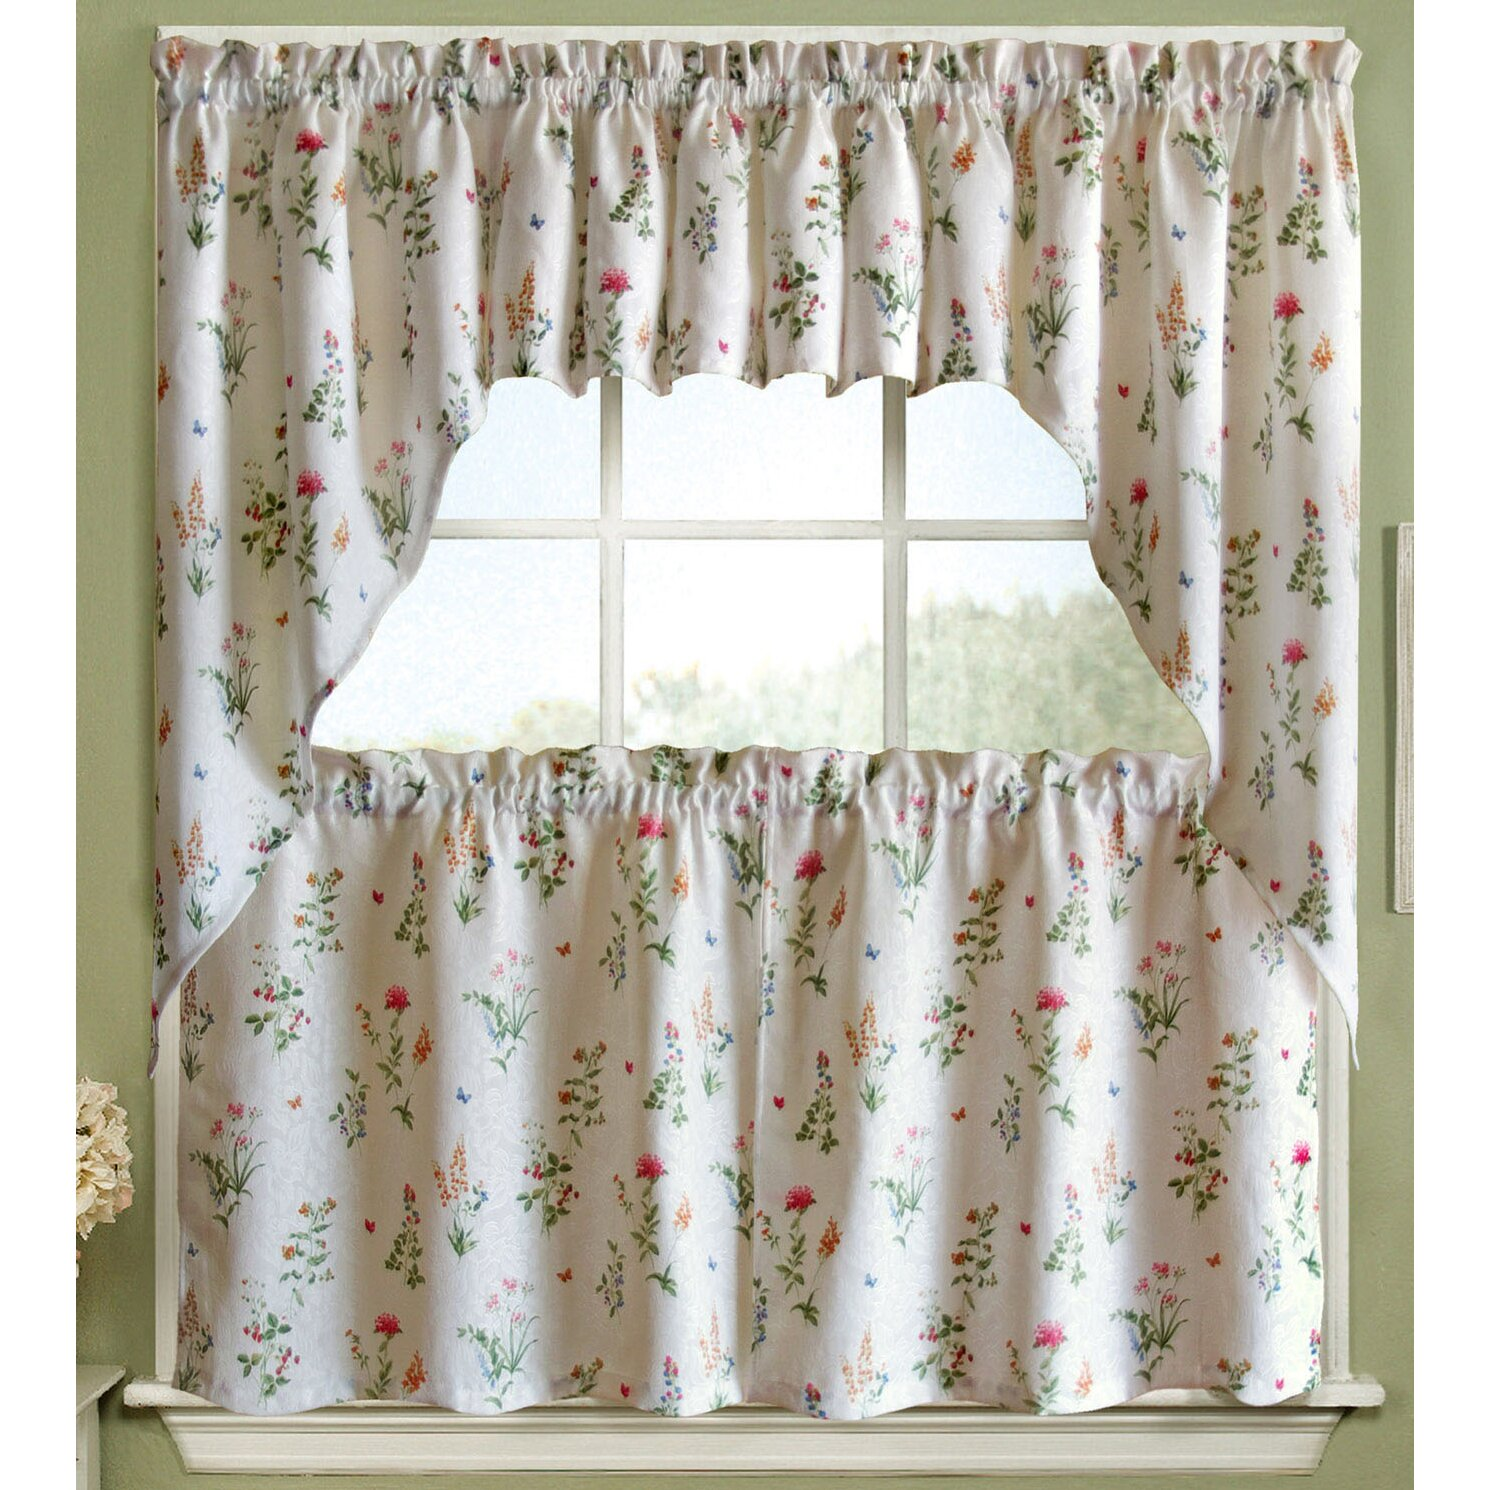 Http Www Wayfair Com English Garden Floral White Jacquard Kitchen Curtain Swag Swag 420 White Swet1648 Html